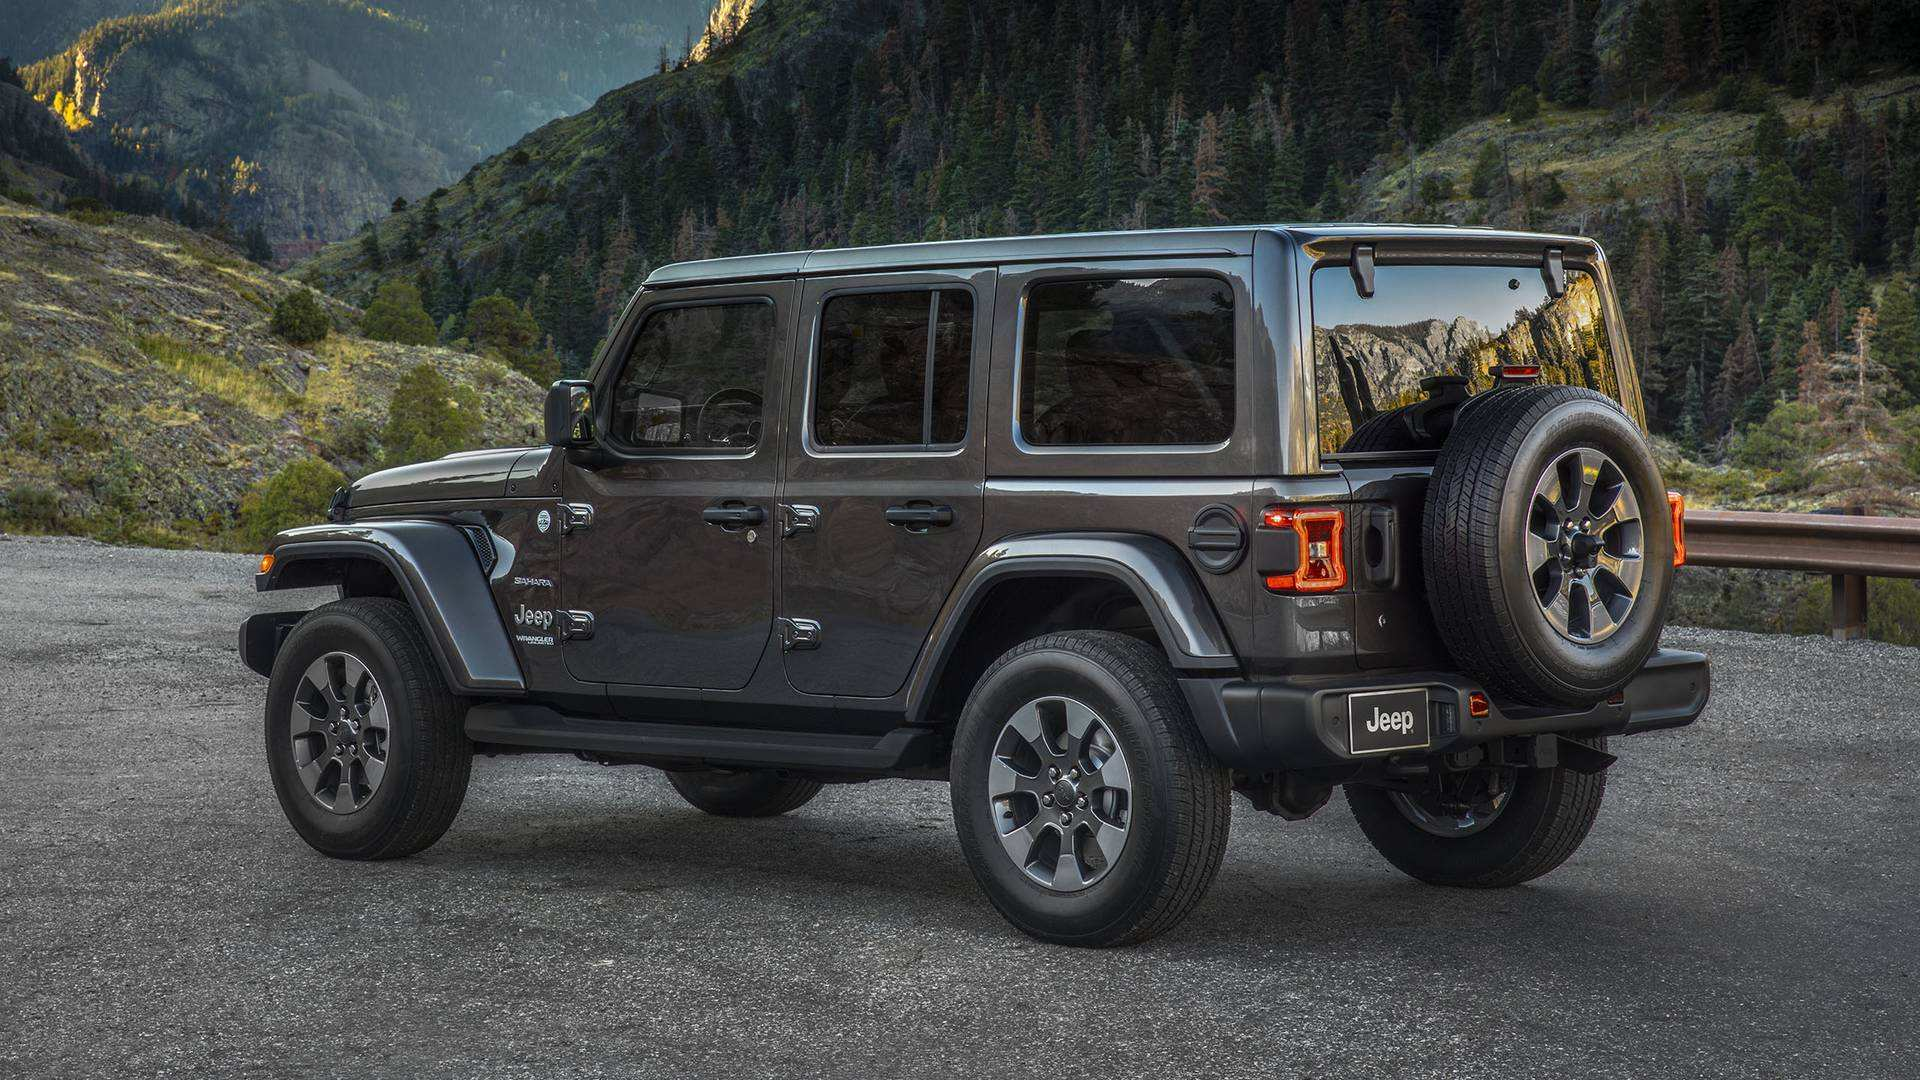 17 New 2019 Jeep Wrangler Diesel Configurations by 2019 Jeep Wrangler Diesel